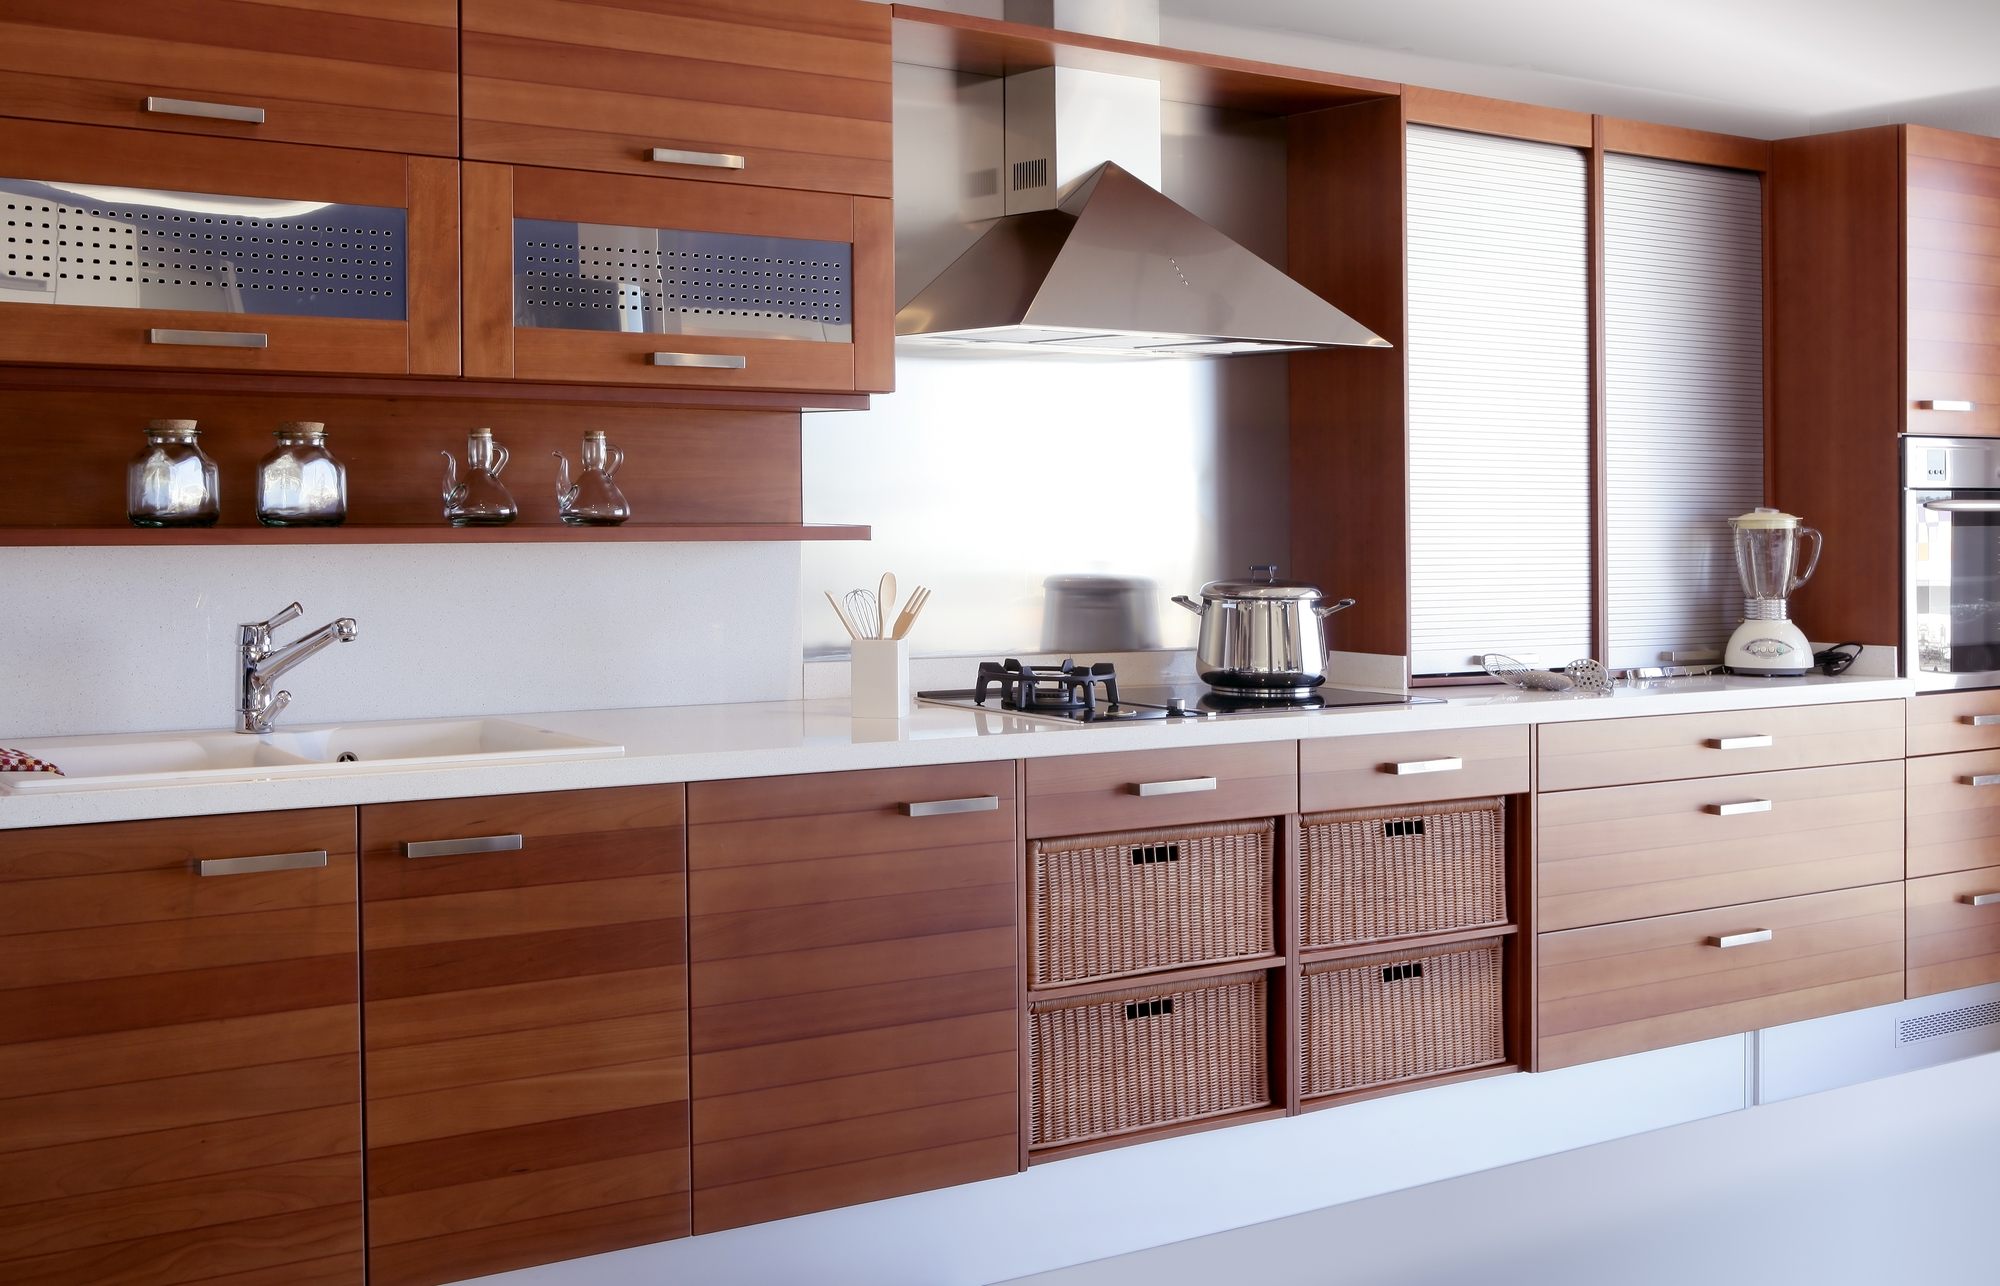 5 Kitchen Cabinet Finishes to Choose From - Factory Direct ...